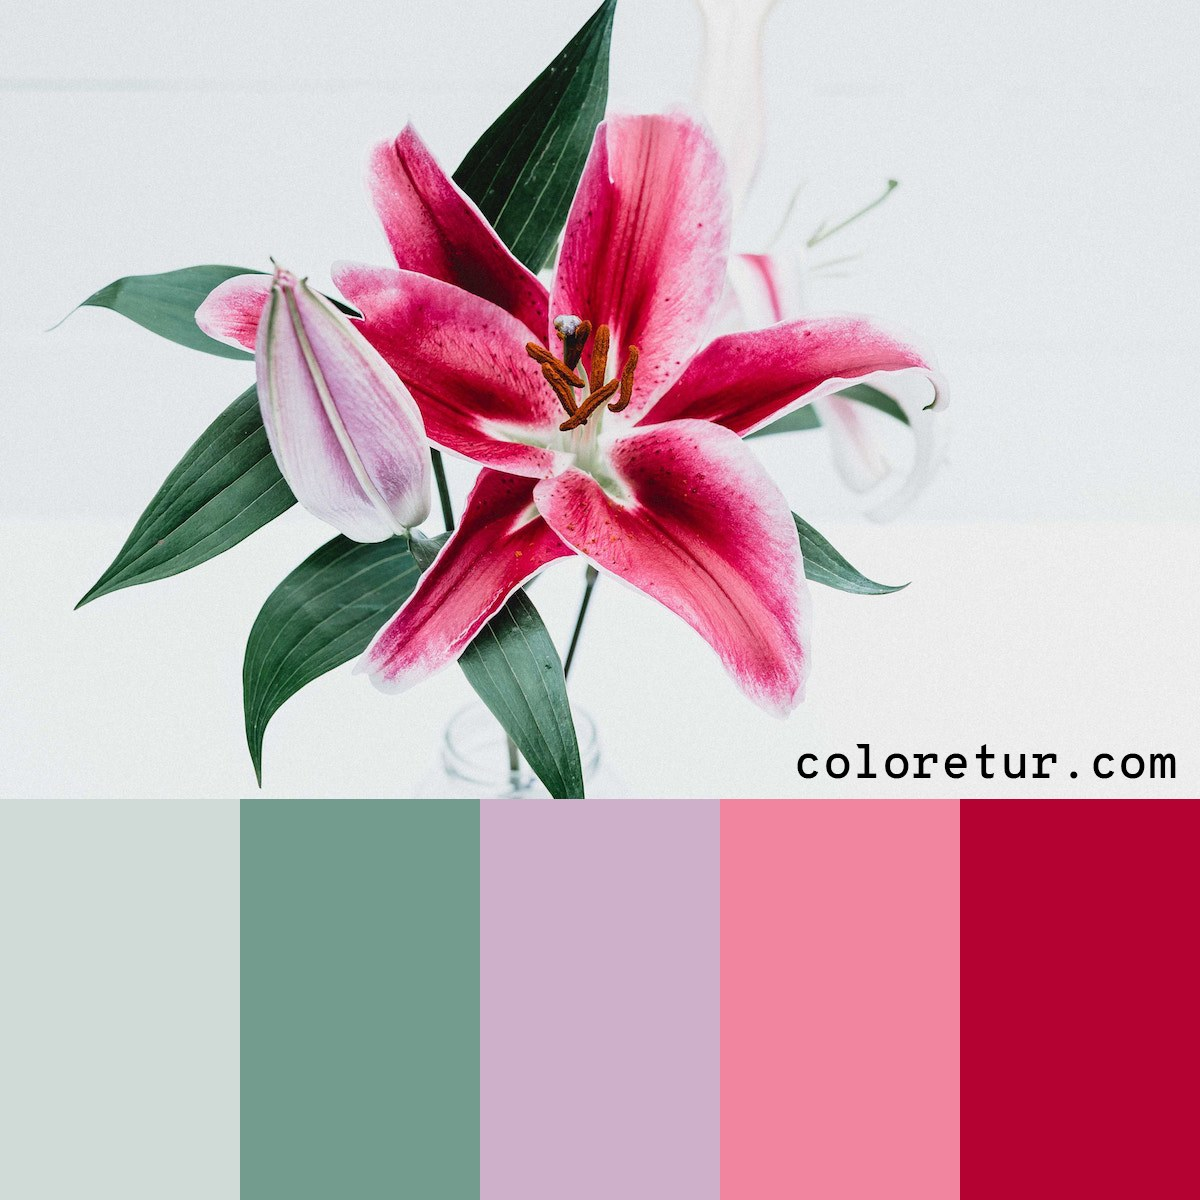 A light, refreshing palette chosen from a pink lily in bloom.